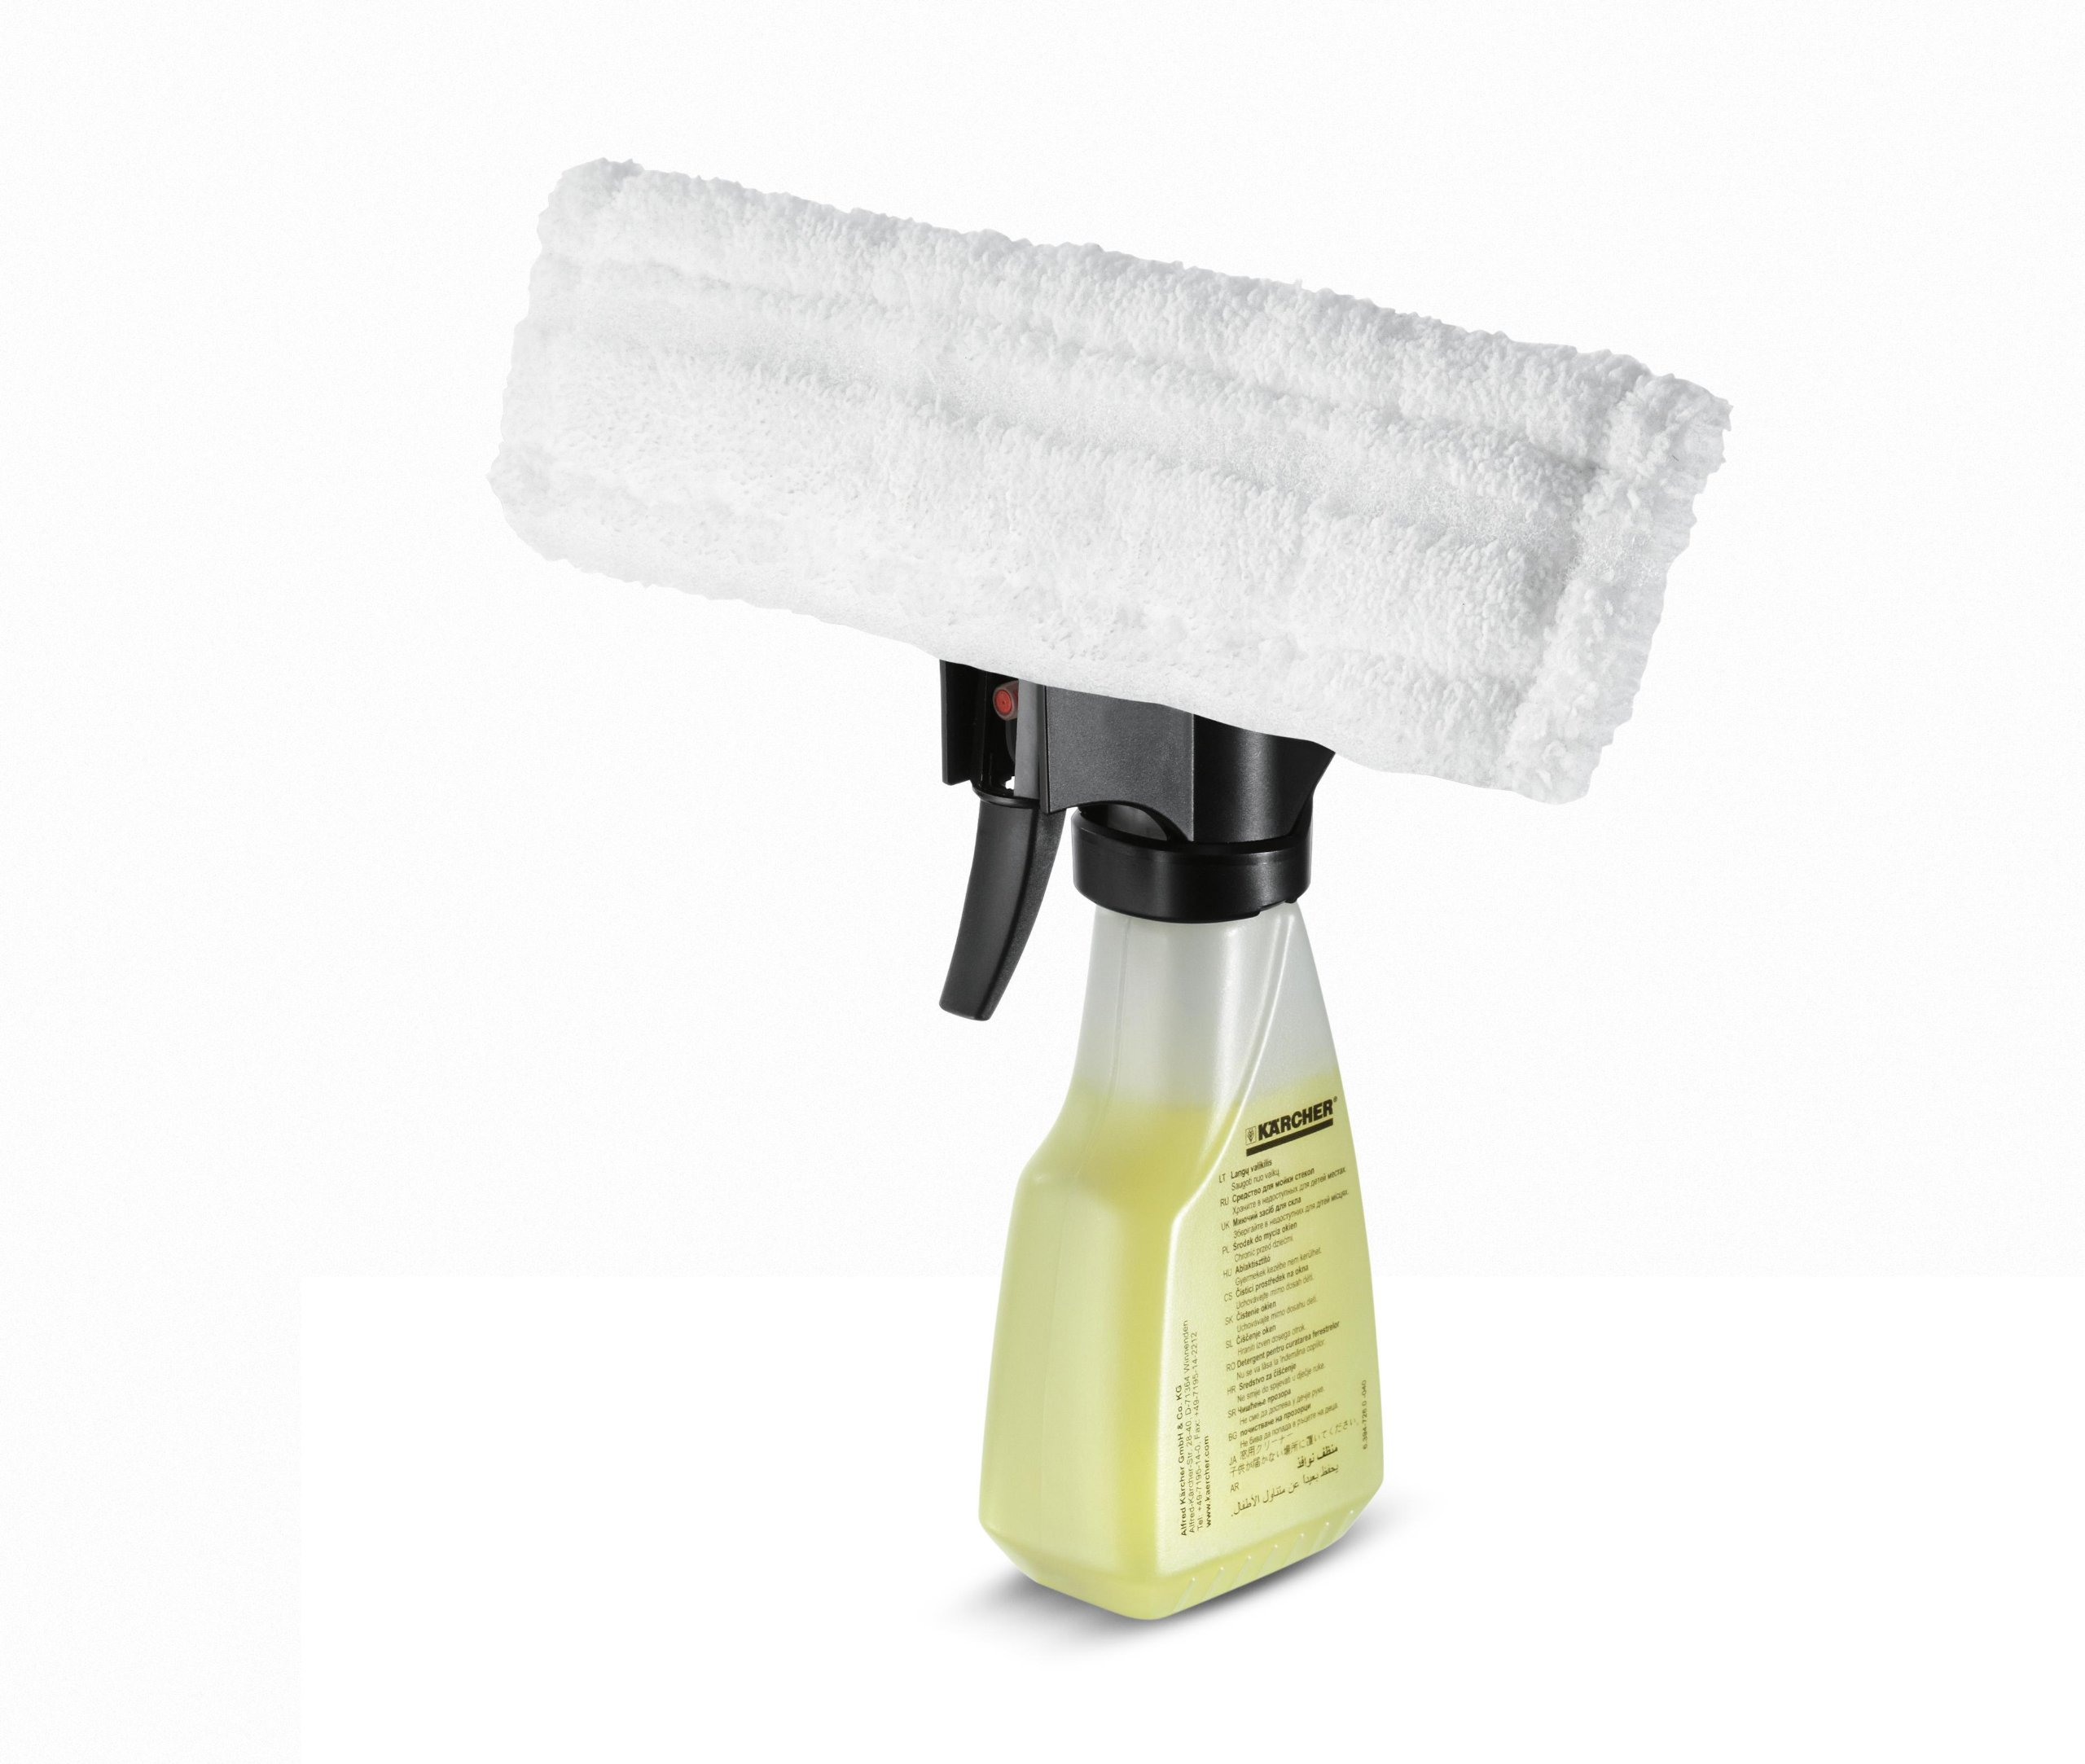 Karcher Spray Bottle and Microfibre Cleaning Head product image